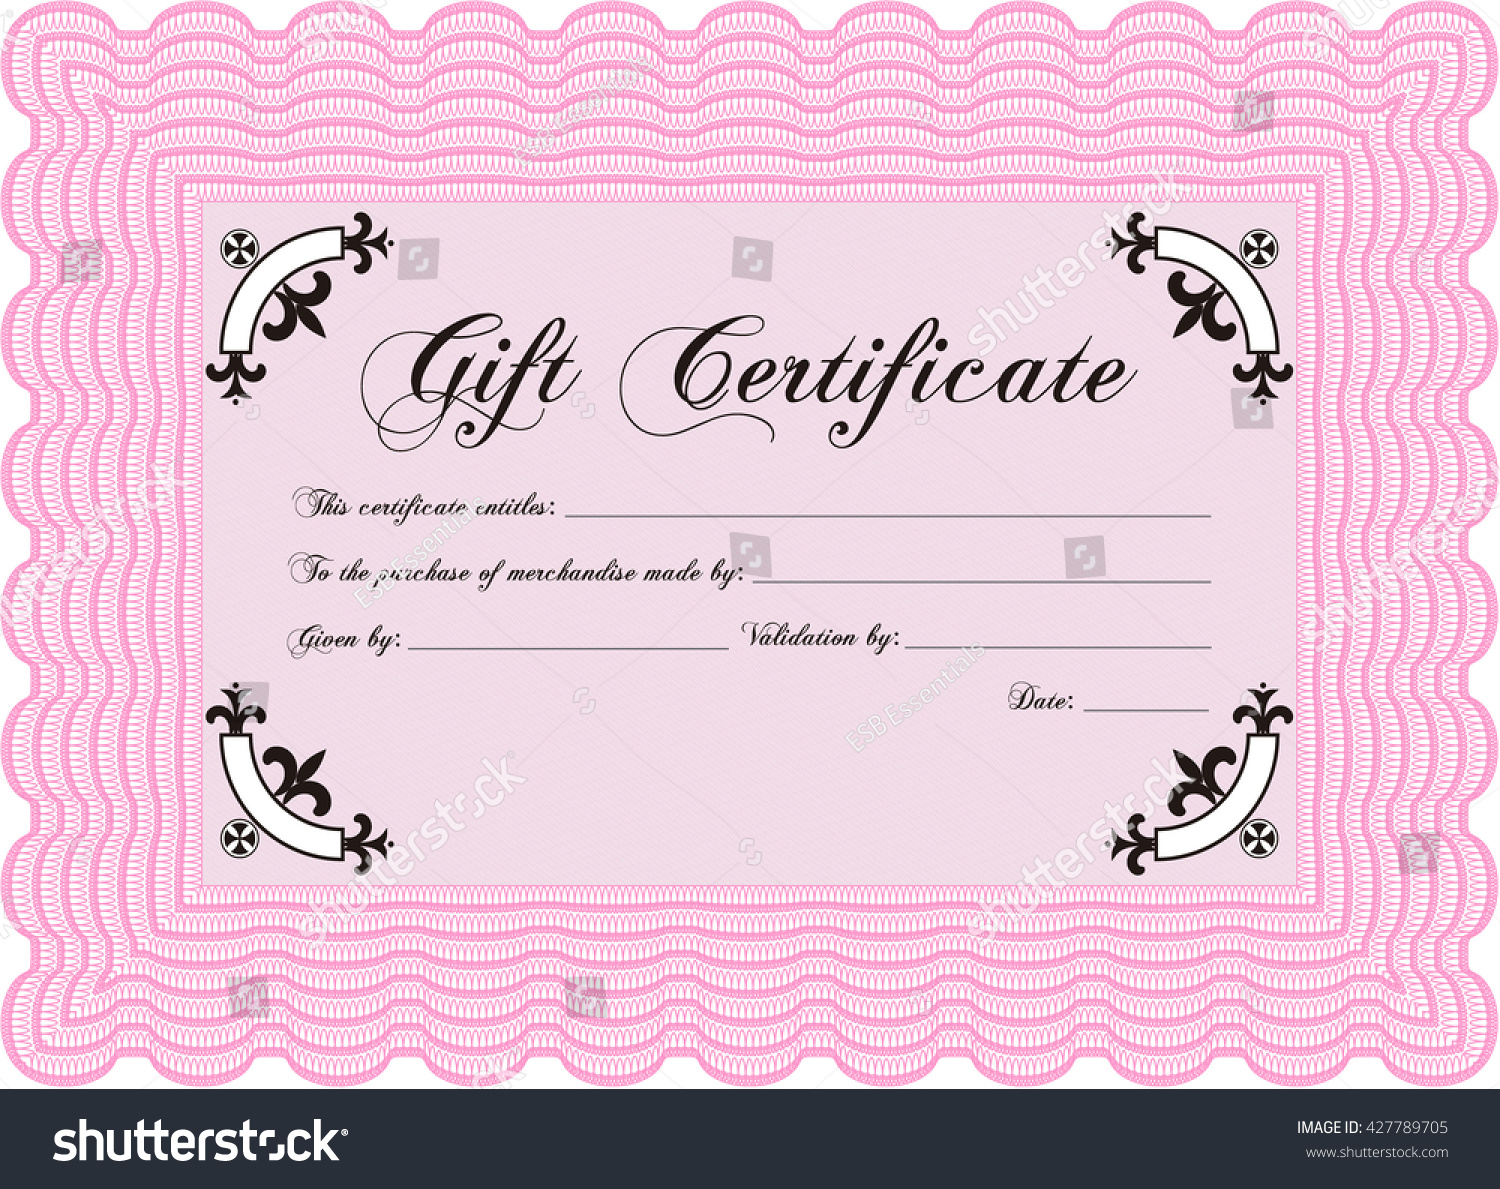 Vector gift certificate template vector illustration stock vector vector gift certificate template vector illustration excellent complex design with complex linear background yadclub Gallery